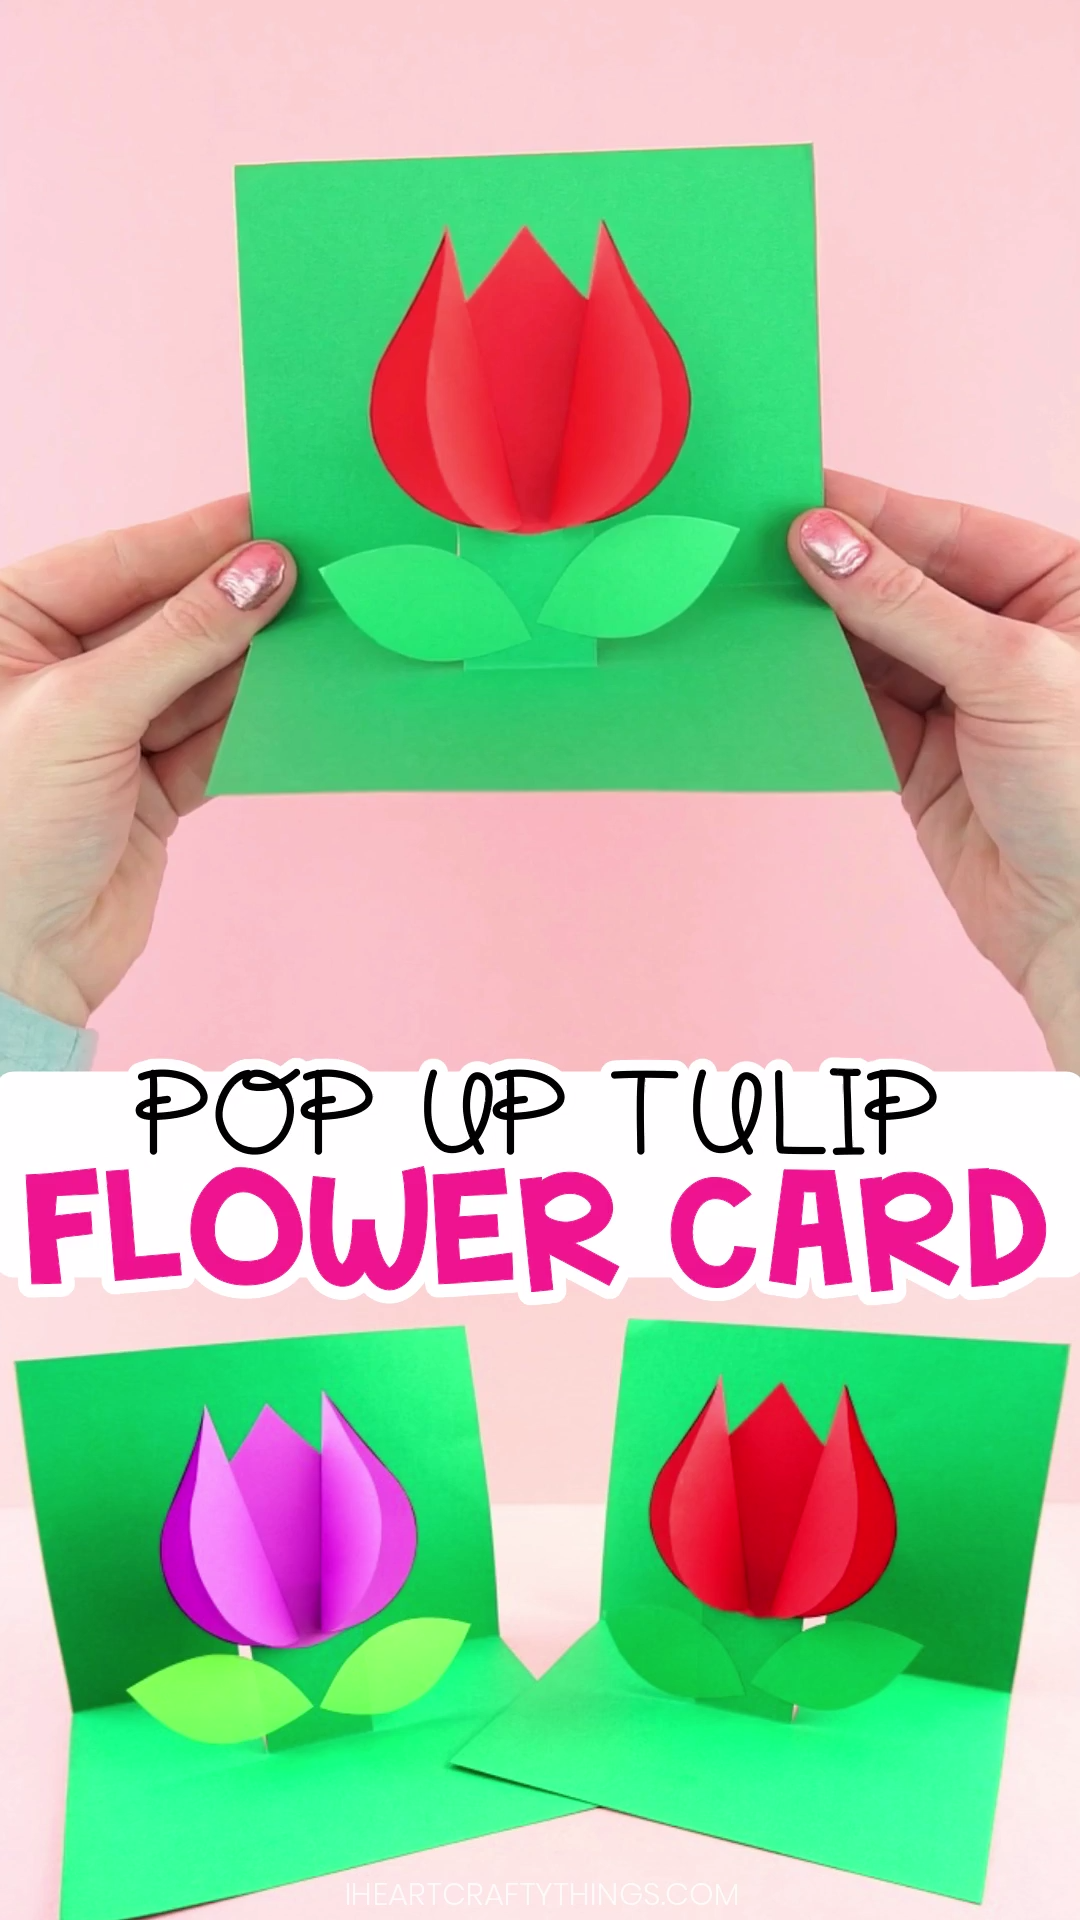 How to Make a Pop Up Flower Card images